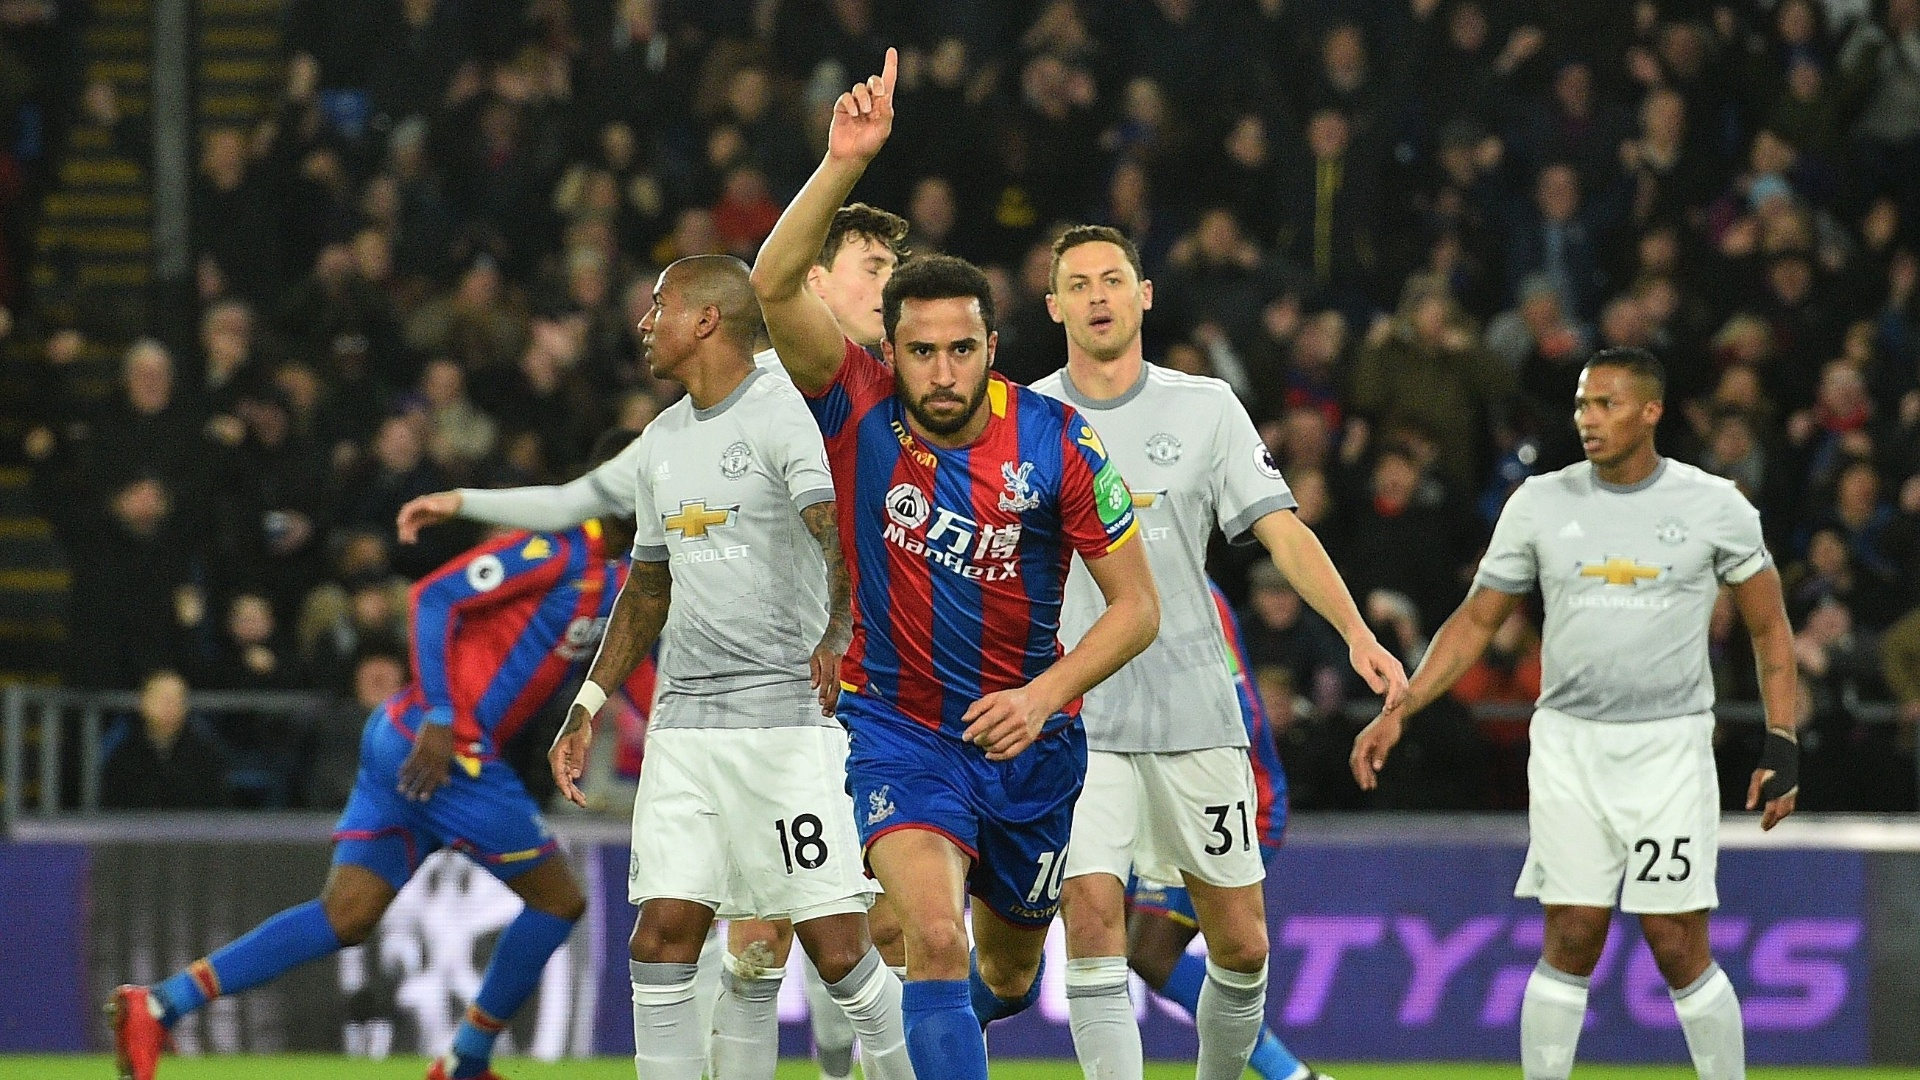 Townsend comemora gol do Crystal Palace sobre o Manchester United